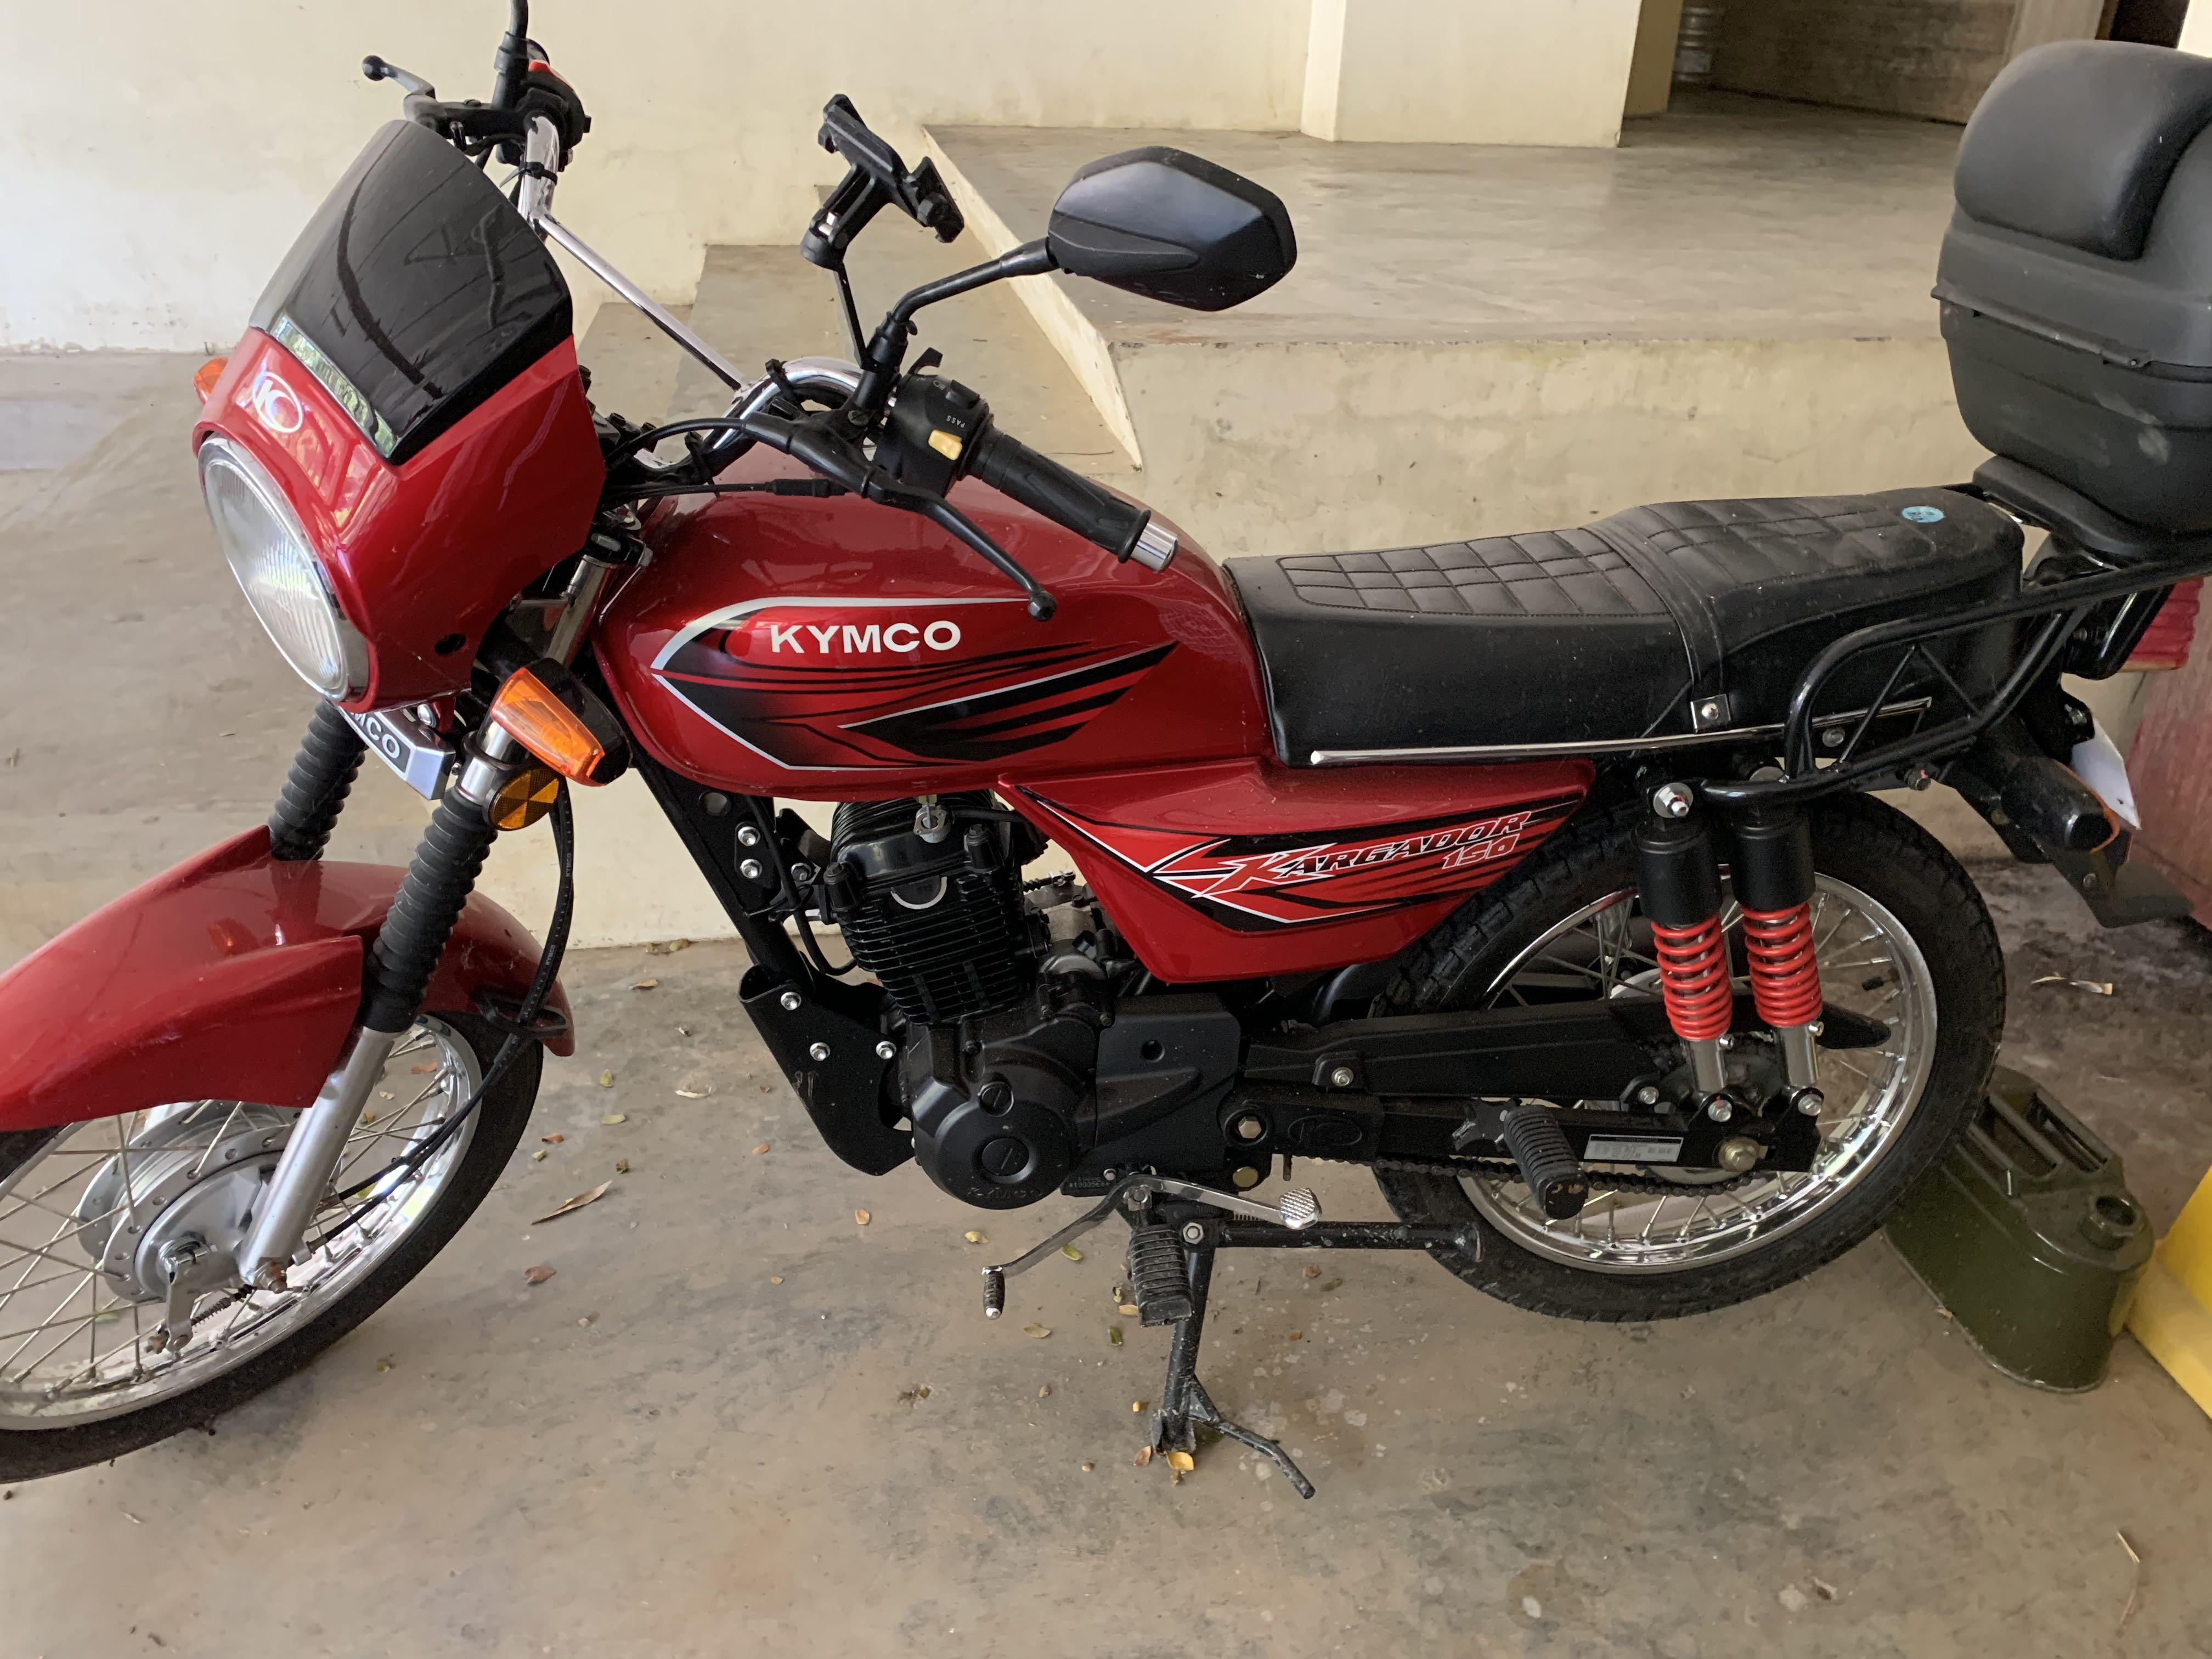 Kymco 150 Great Tricycle Motorcycle High Power Motor Motorbikes Motorbikes For Sale On Carousell